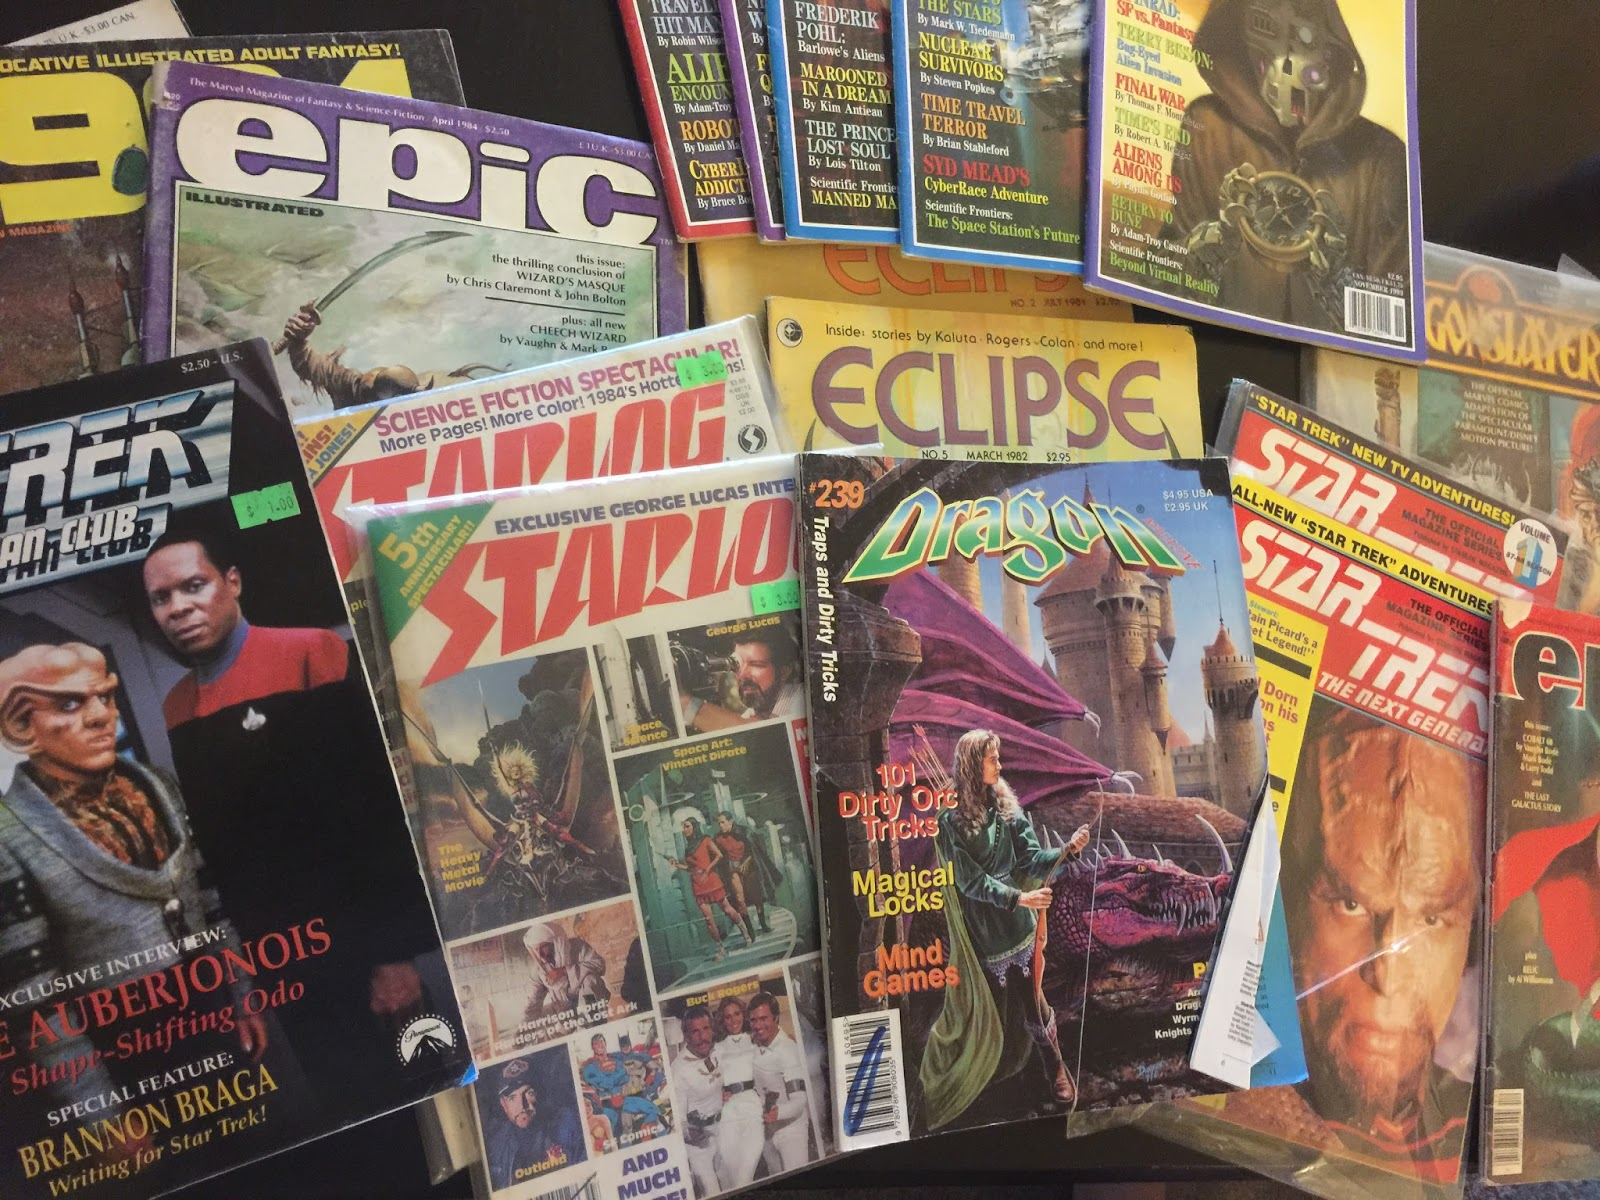 First Edition Fantasy: Science Fiction Magazine